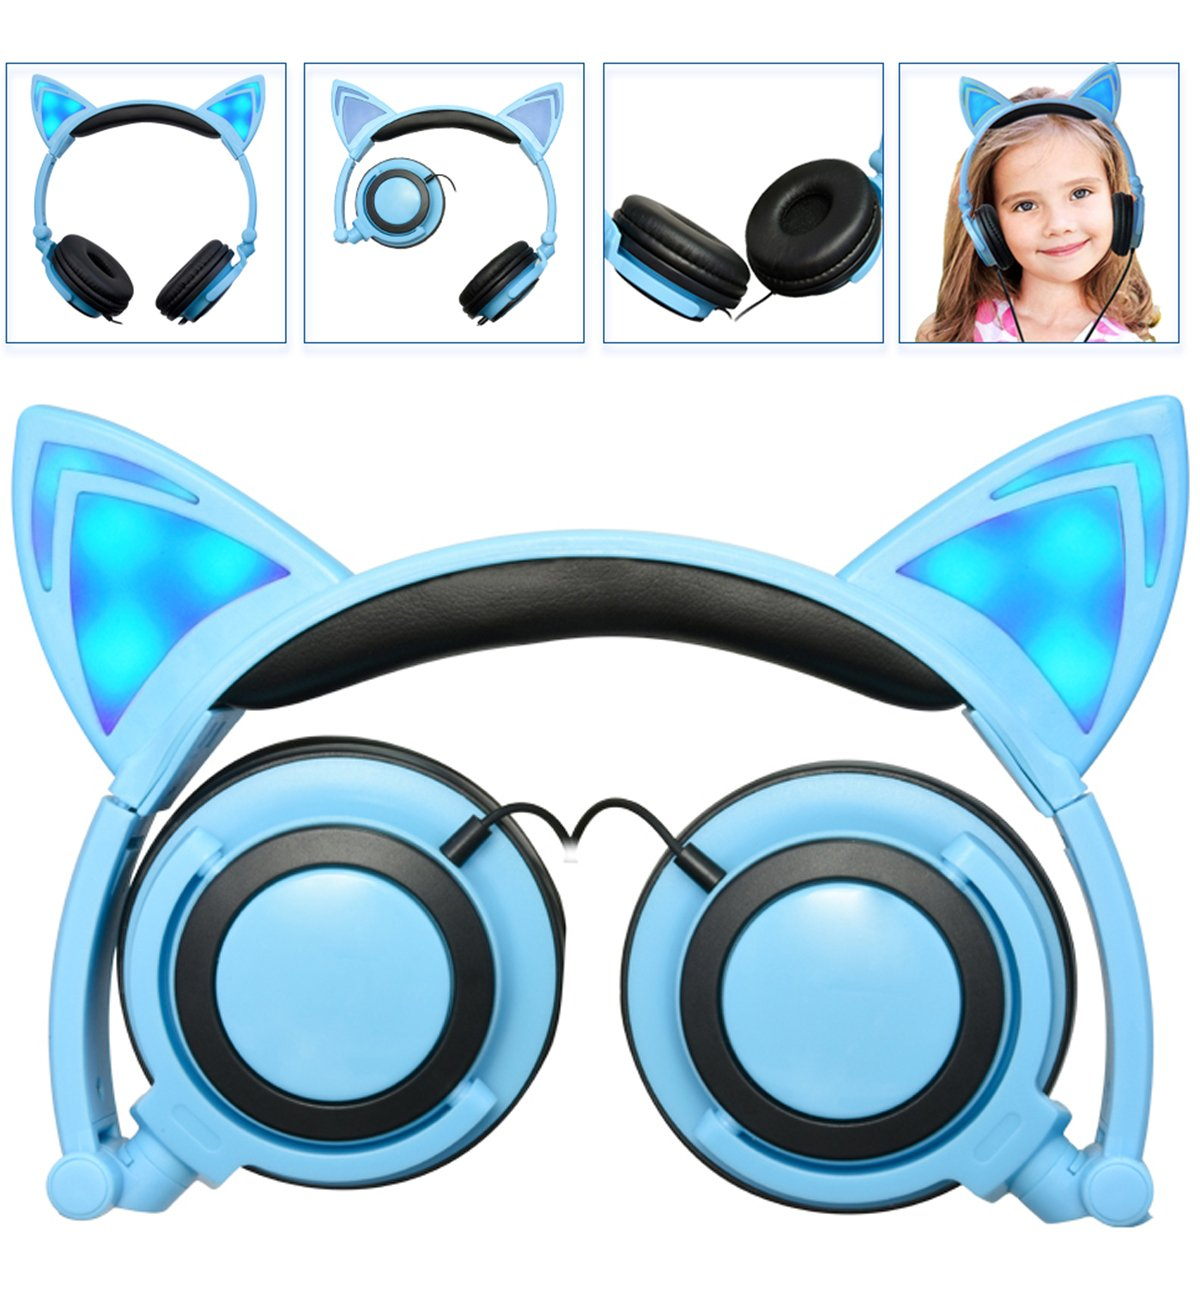 Headphone Cat Ear Headset, Foldable LED Light Cosplay Flash Earphone for Teens Girls Boys,Compatible for iPad,Tablet,Computer,iPhone,Android Mobile Phone (blue)